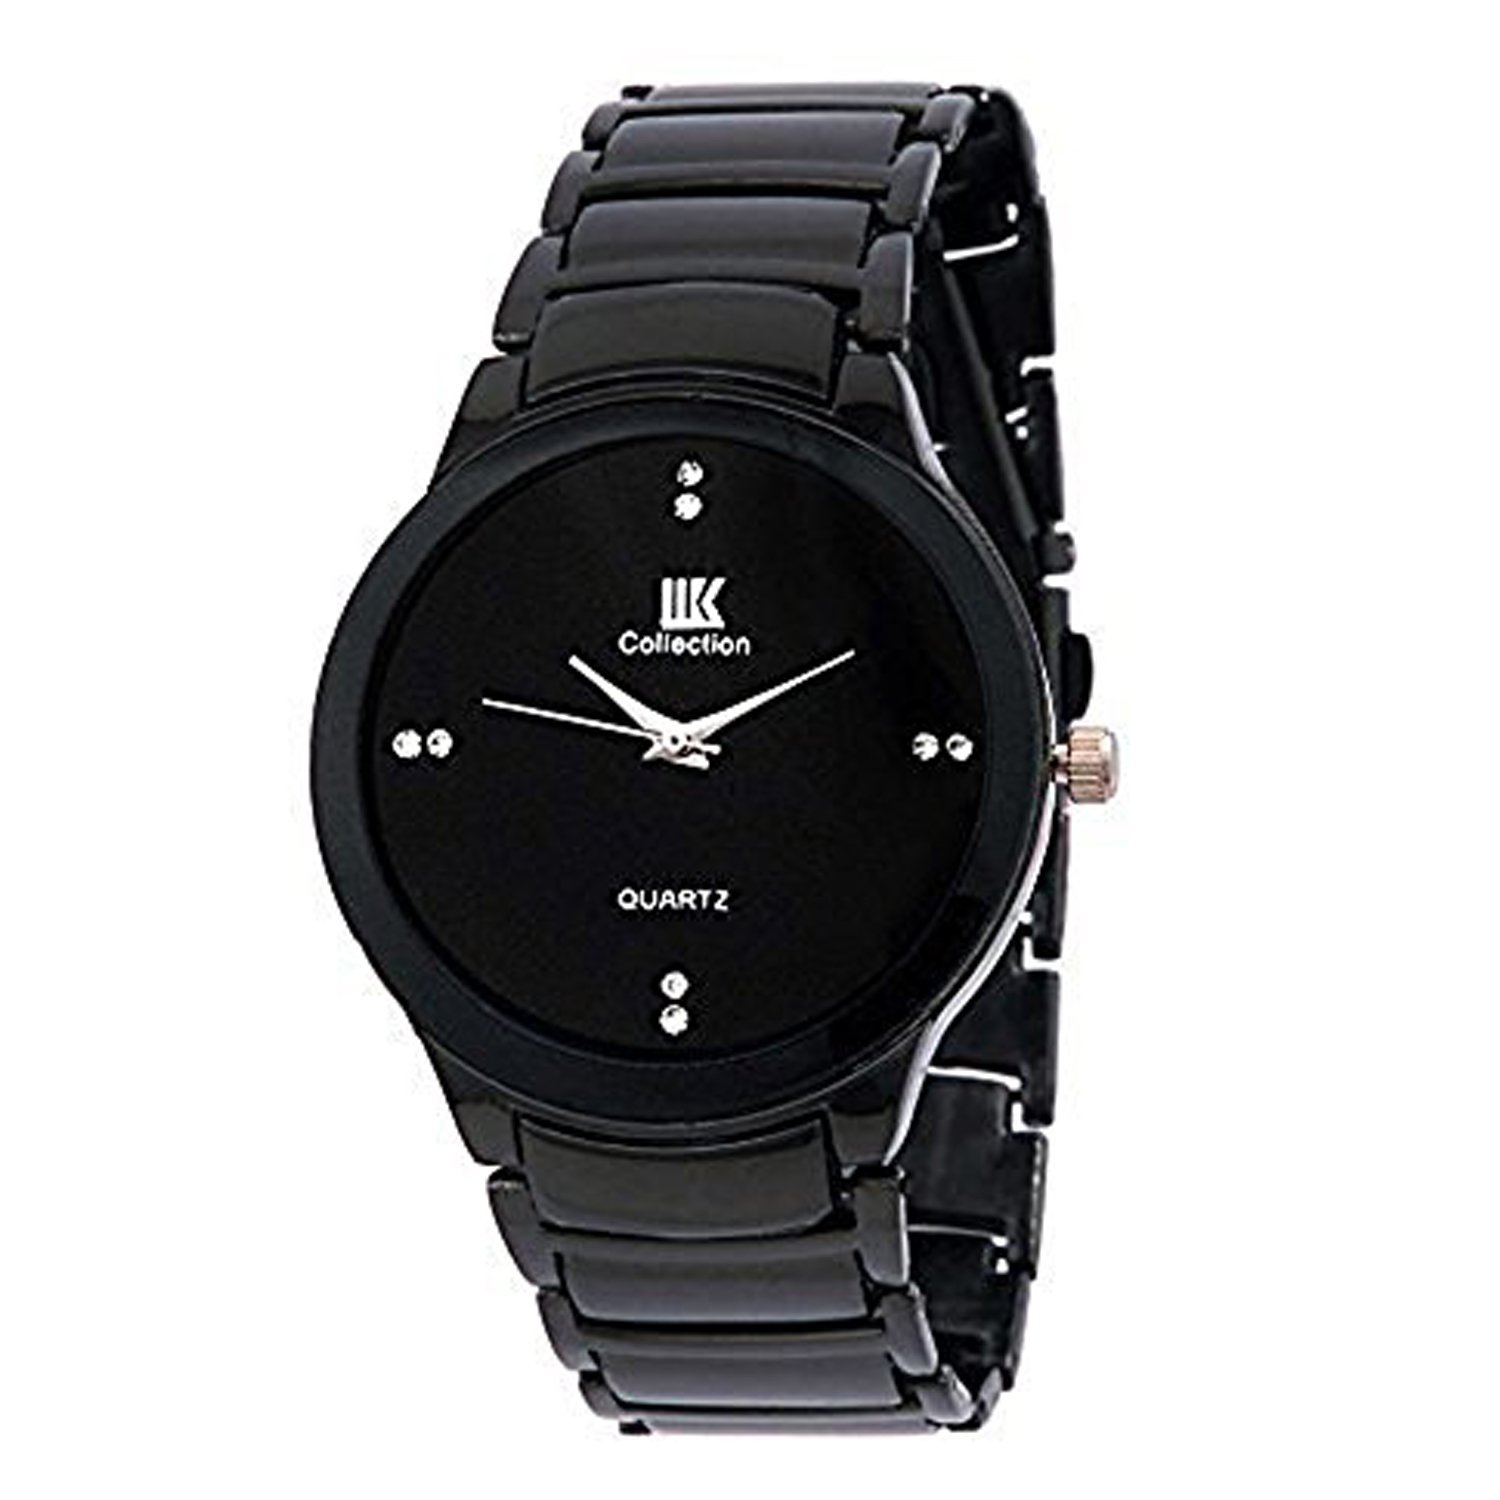 amazon in s deals on watches watches iik collection analogue black dial men s watch iik034m